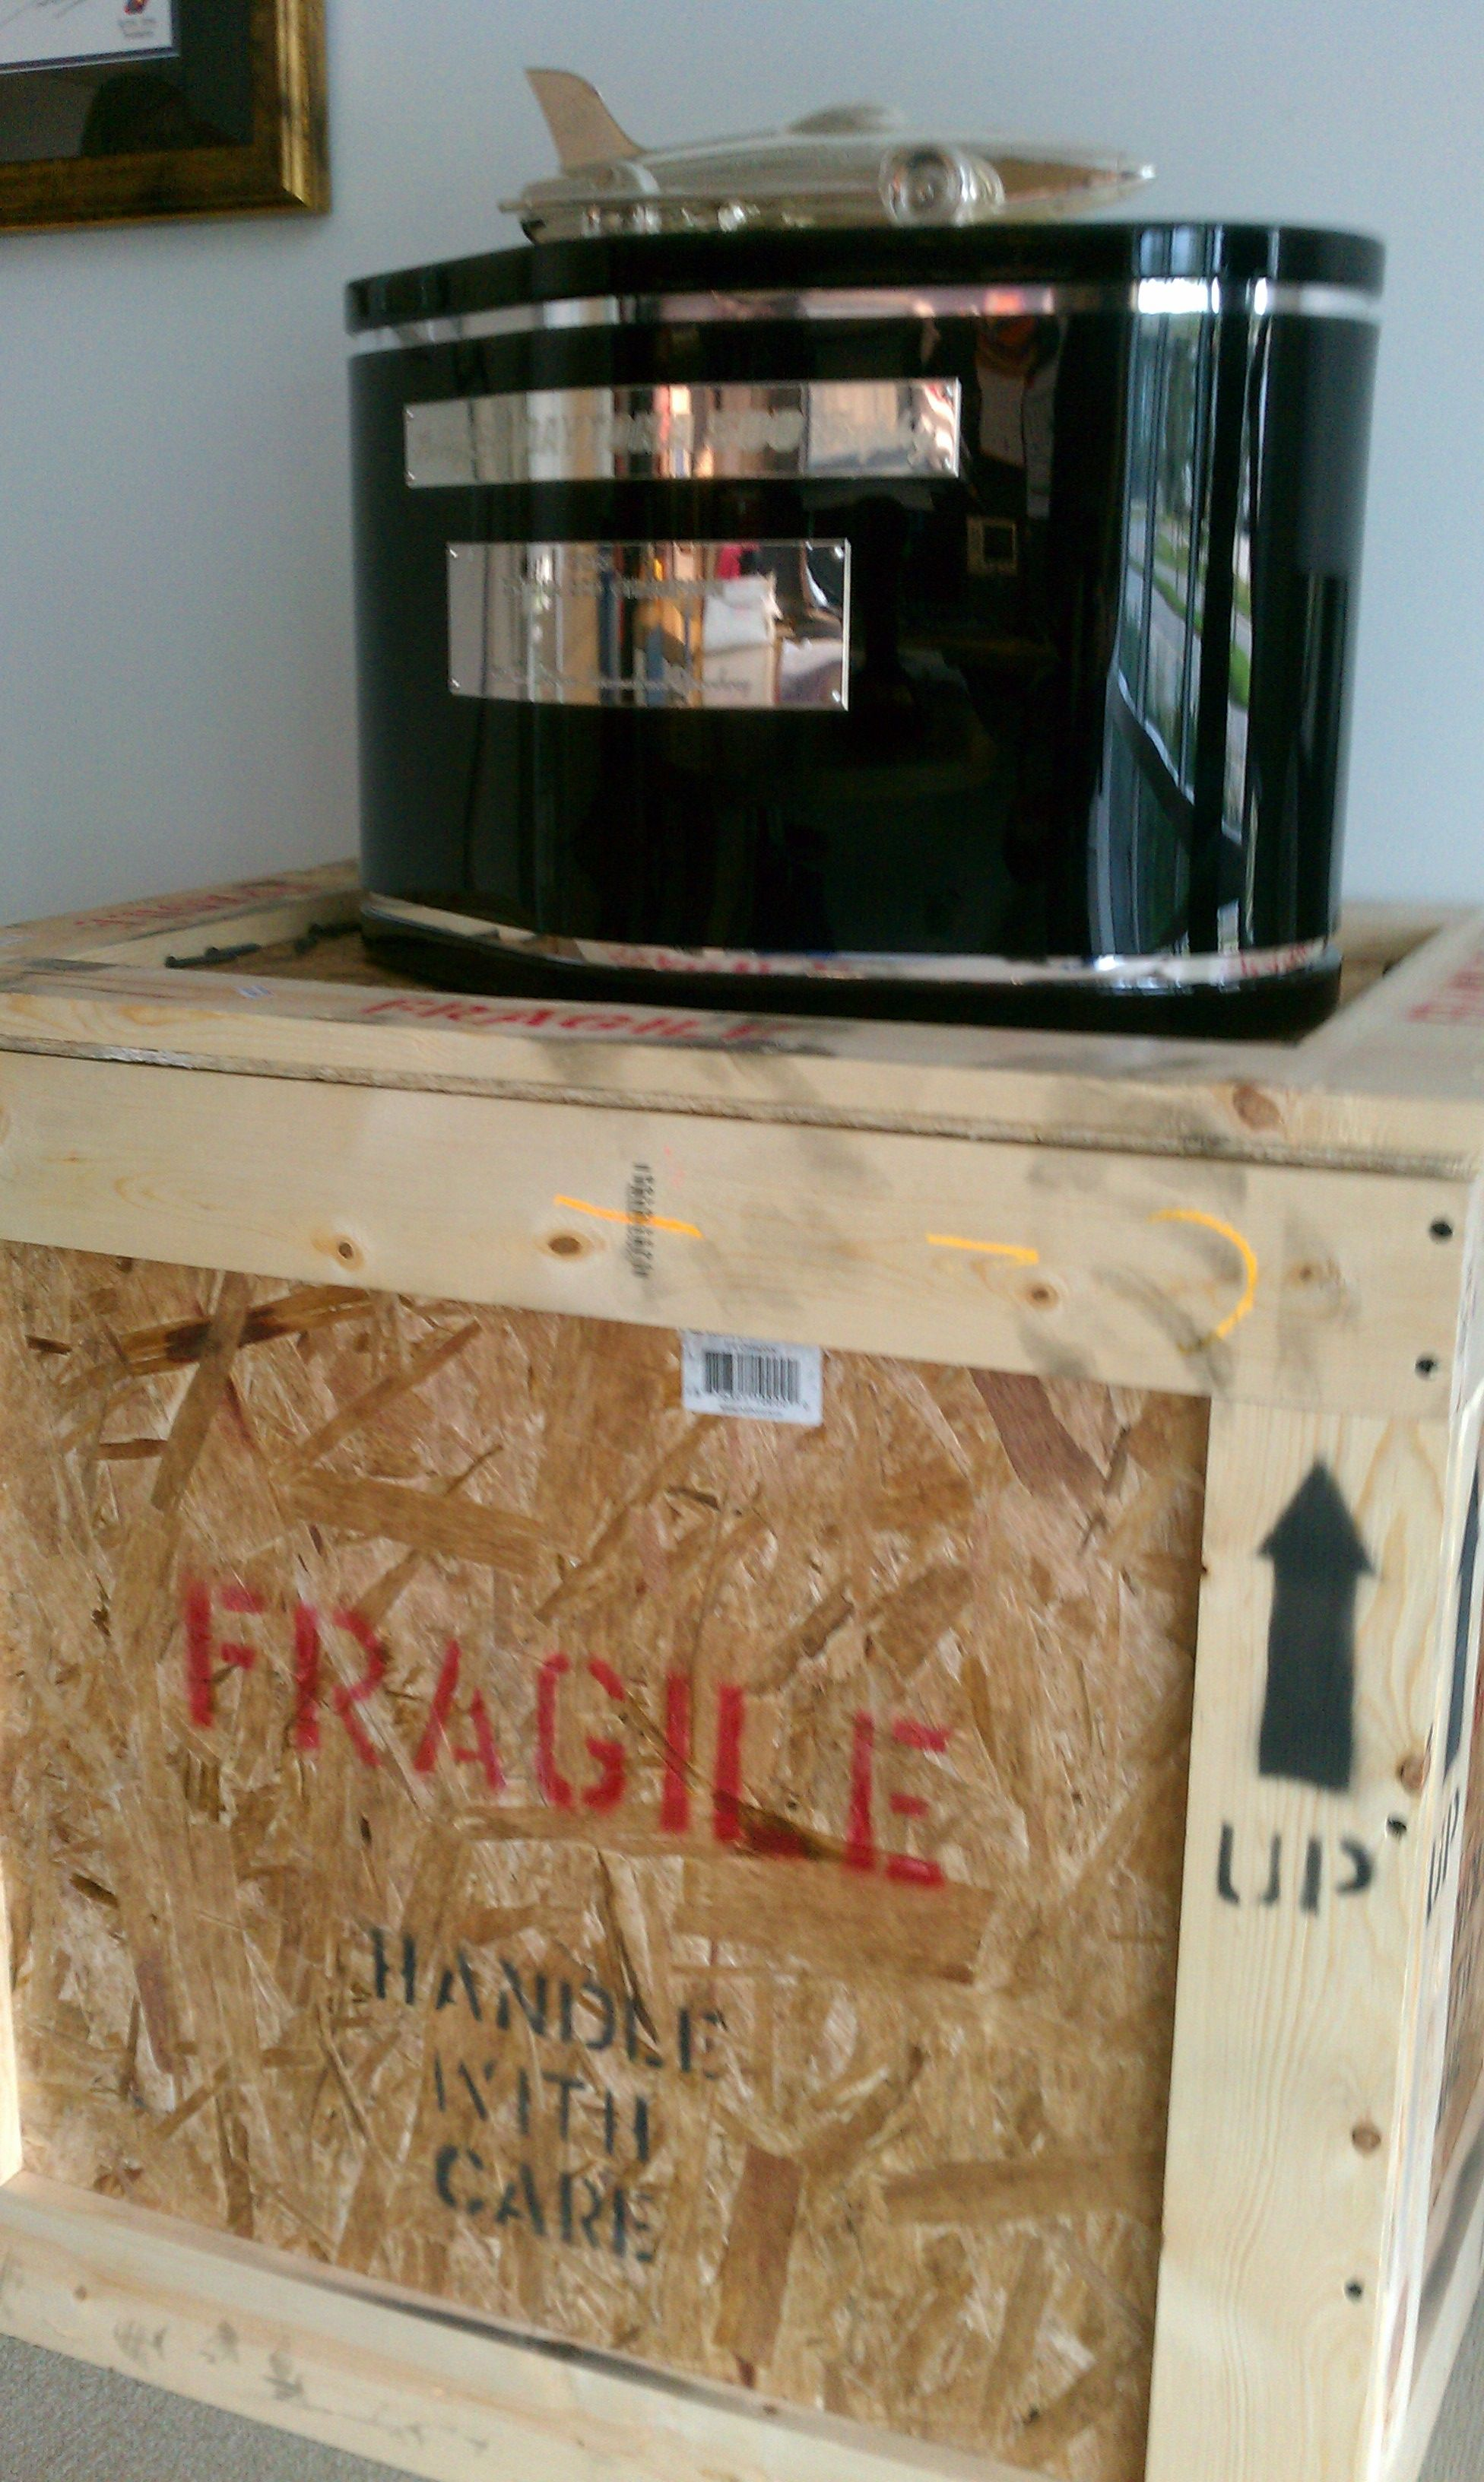 Special delivery...The Harley J. Earl DAYTONA 500 trophy has arrived!